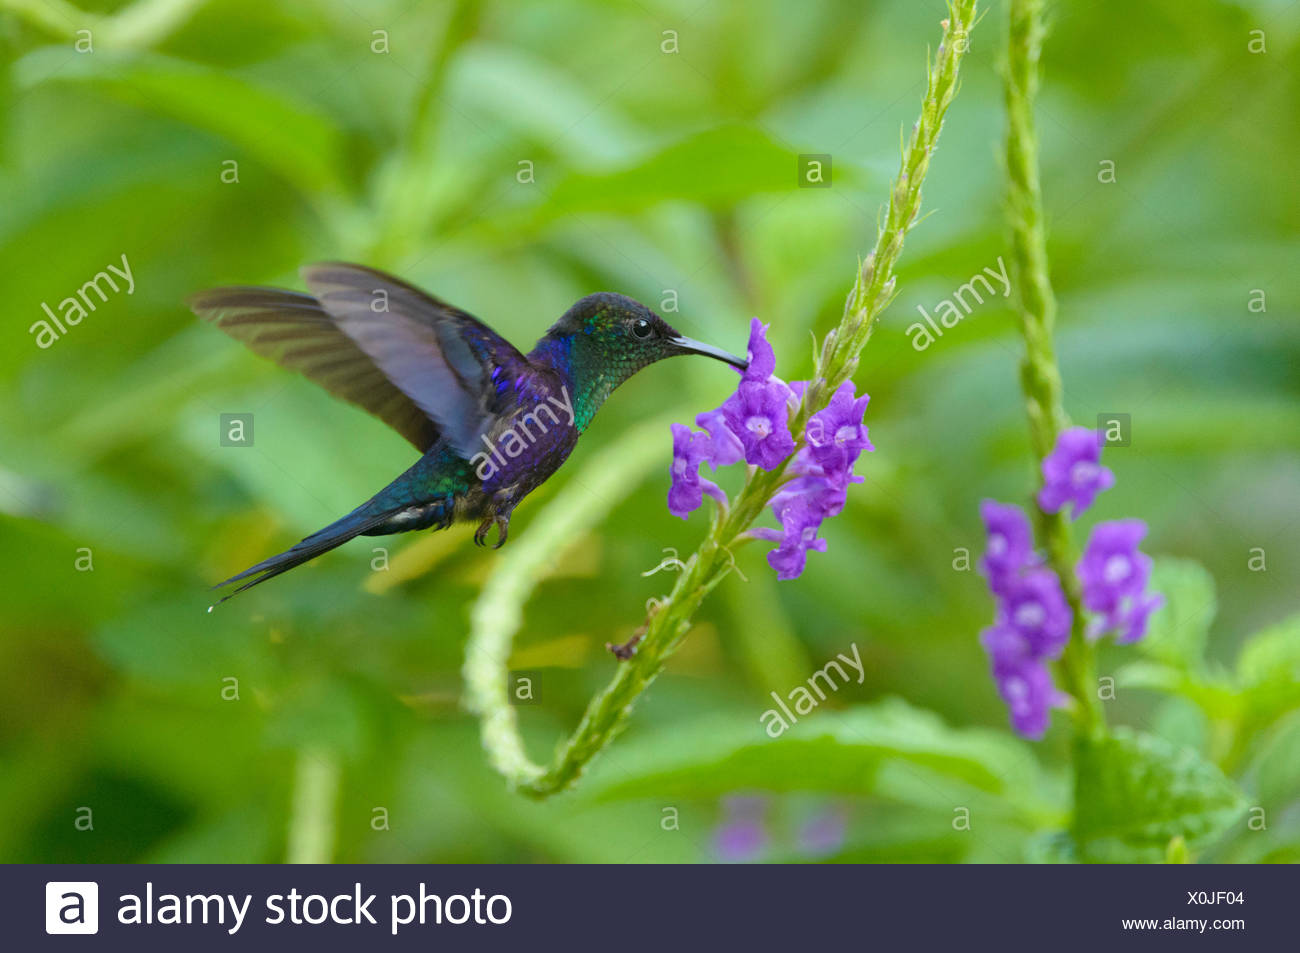 Violet-crowned Woodnymph (Thalurania colombica), in flight, feeding on nectar from flower, Puntarenas Province, Costa Rica - Stock Image